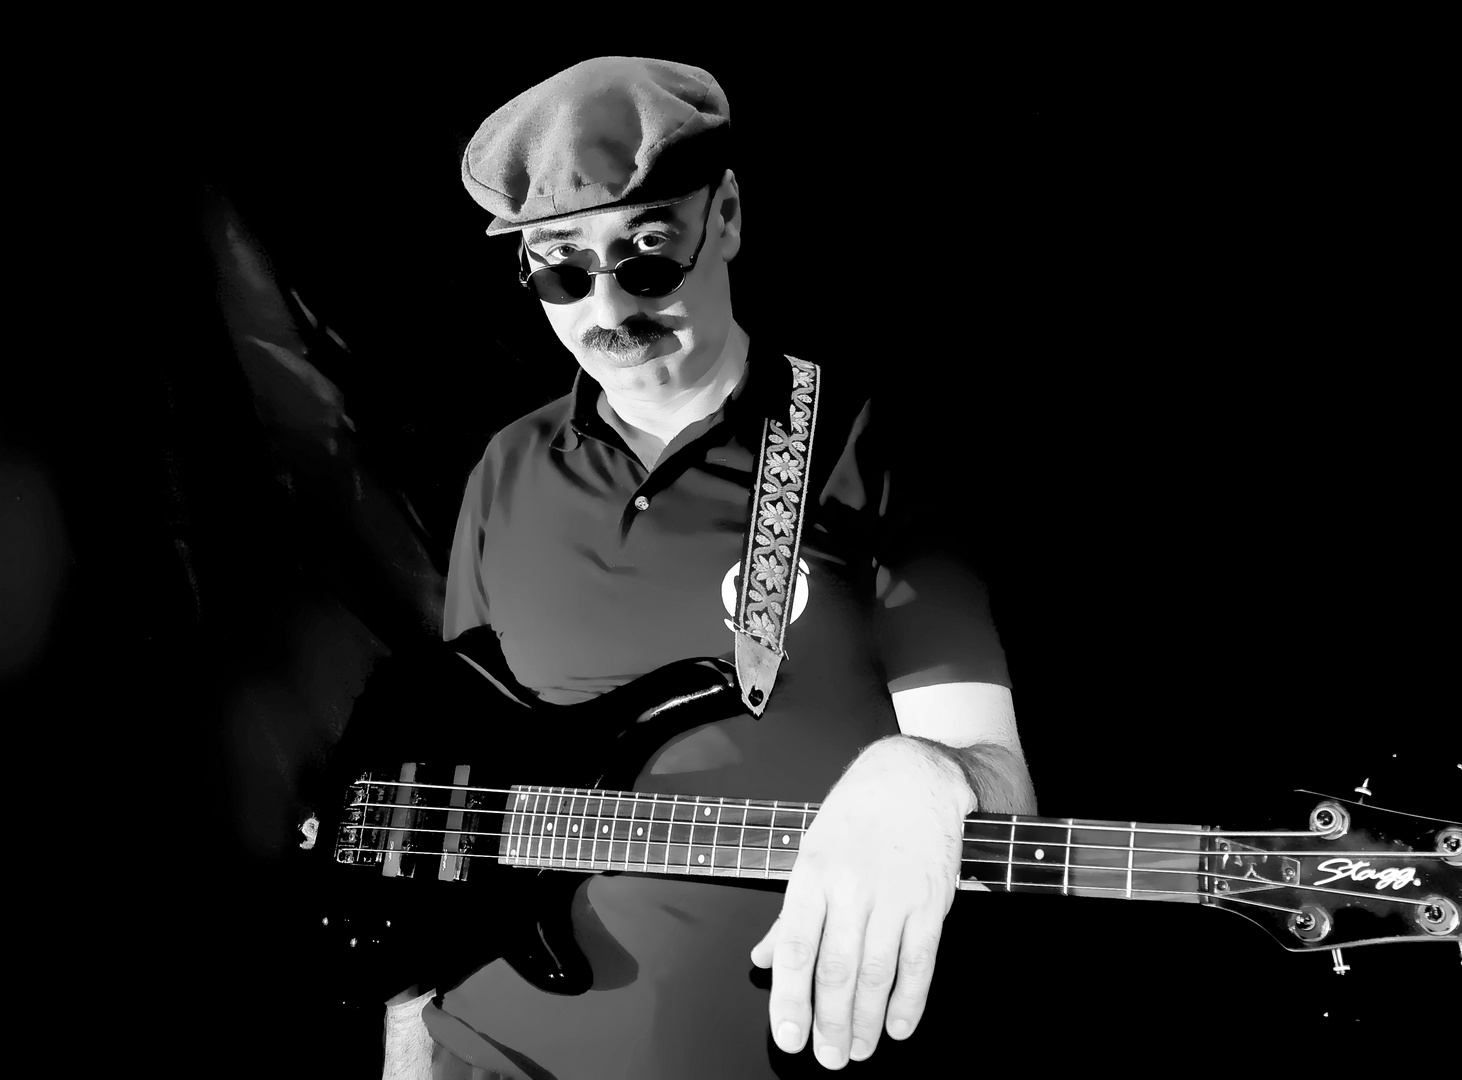 Mike on Bass